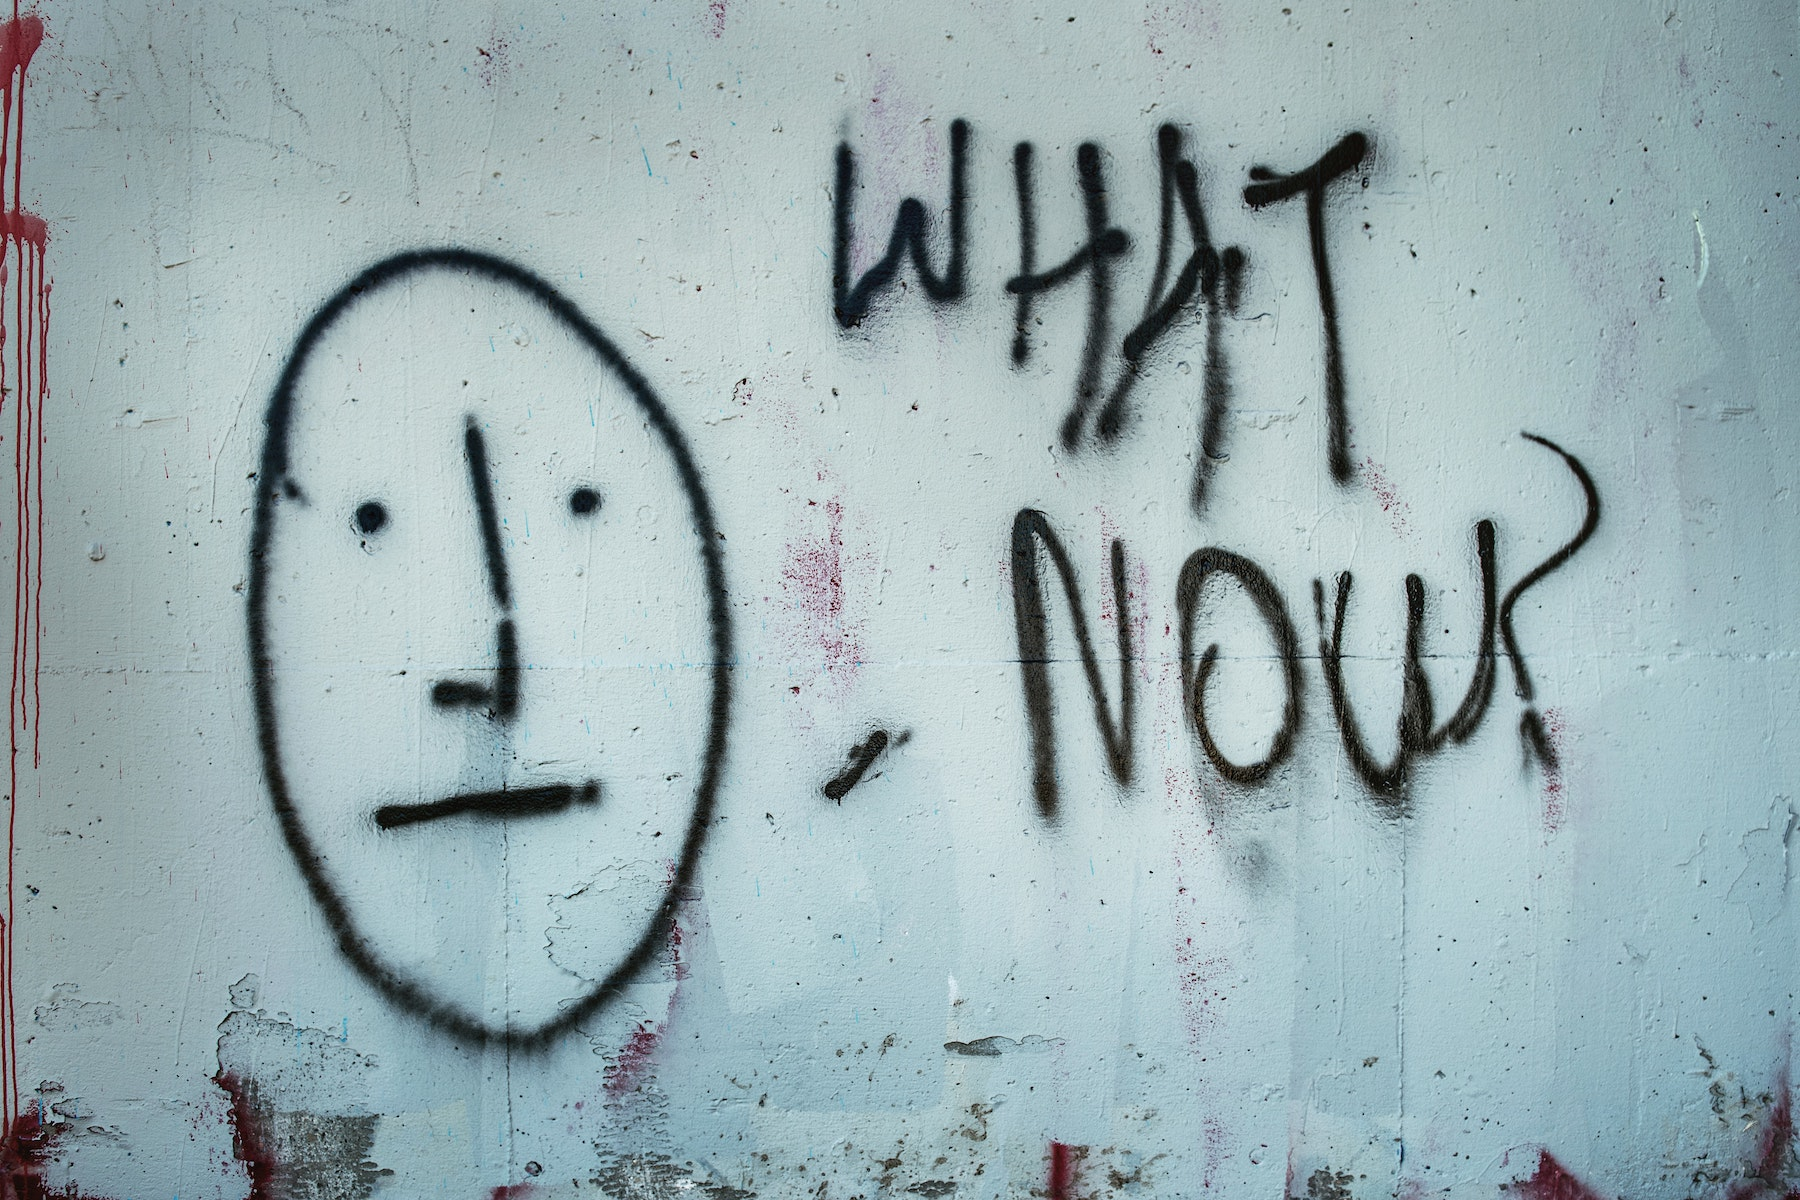 Photo of graffiti asking What Now?